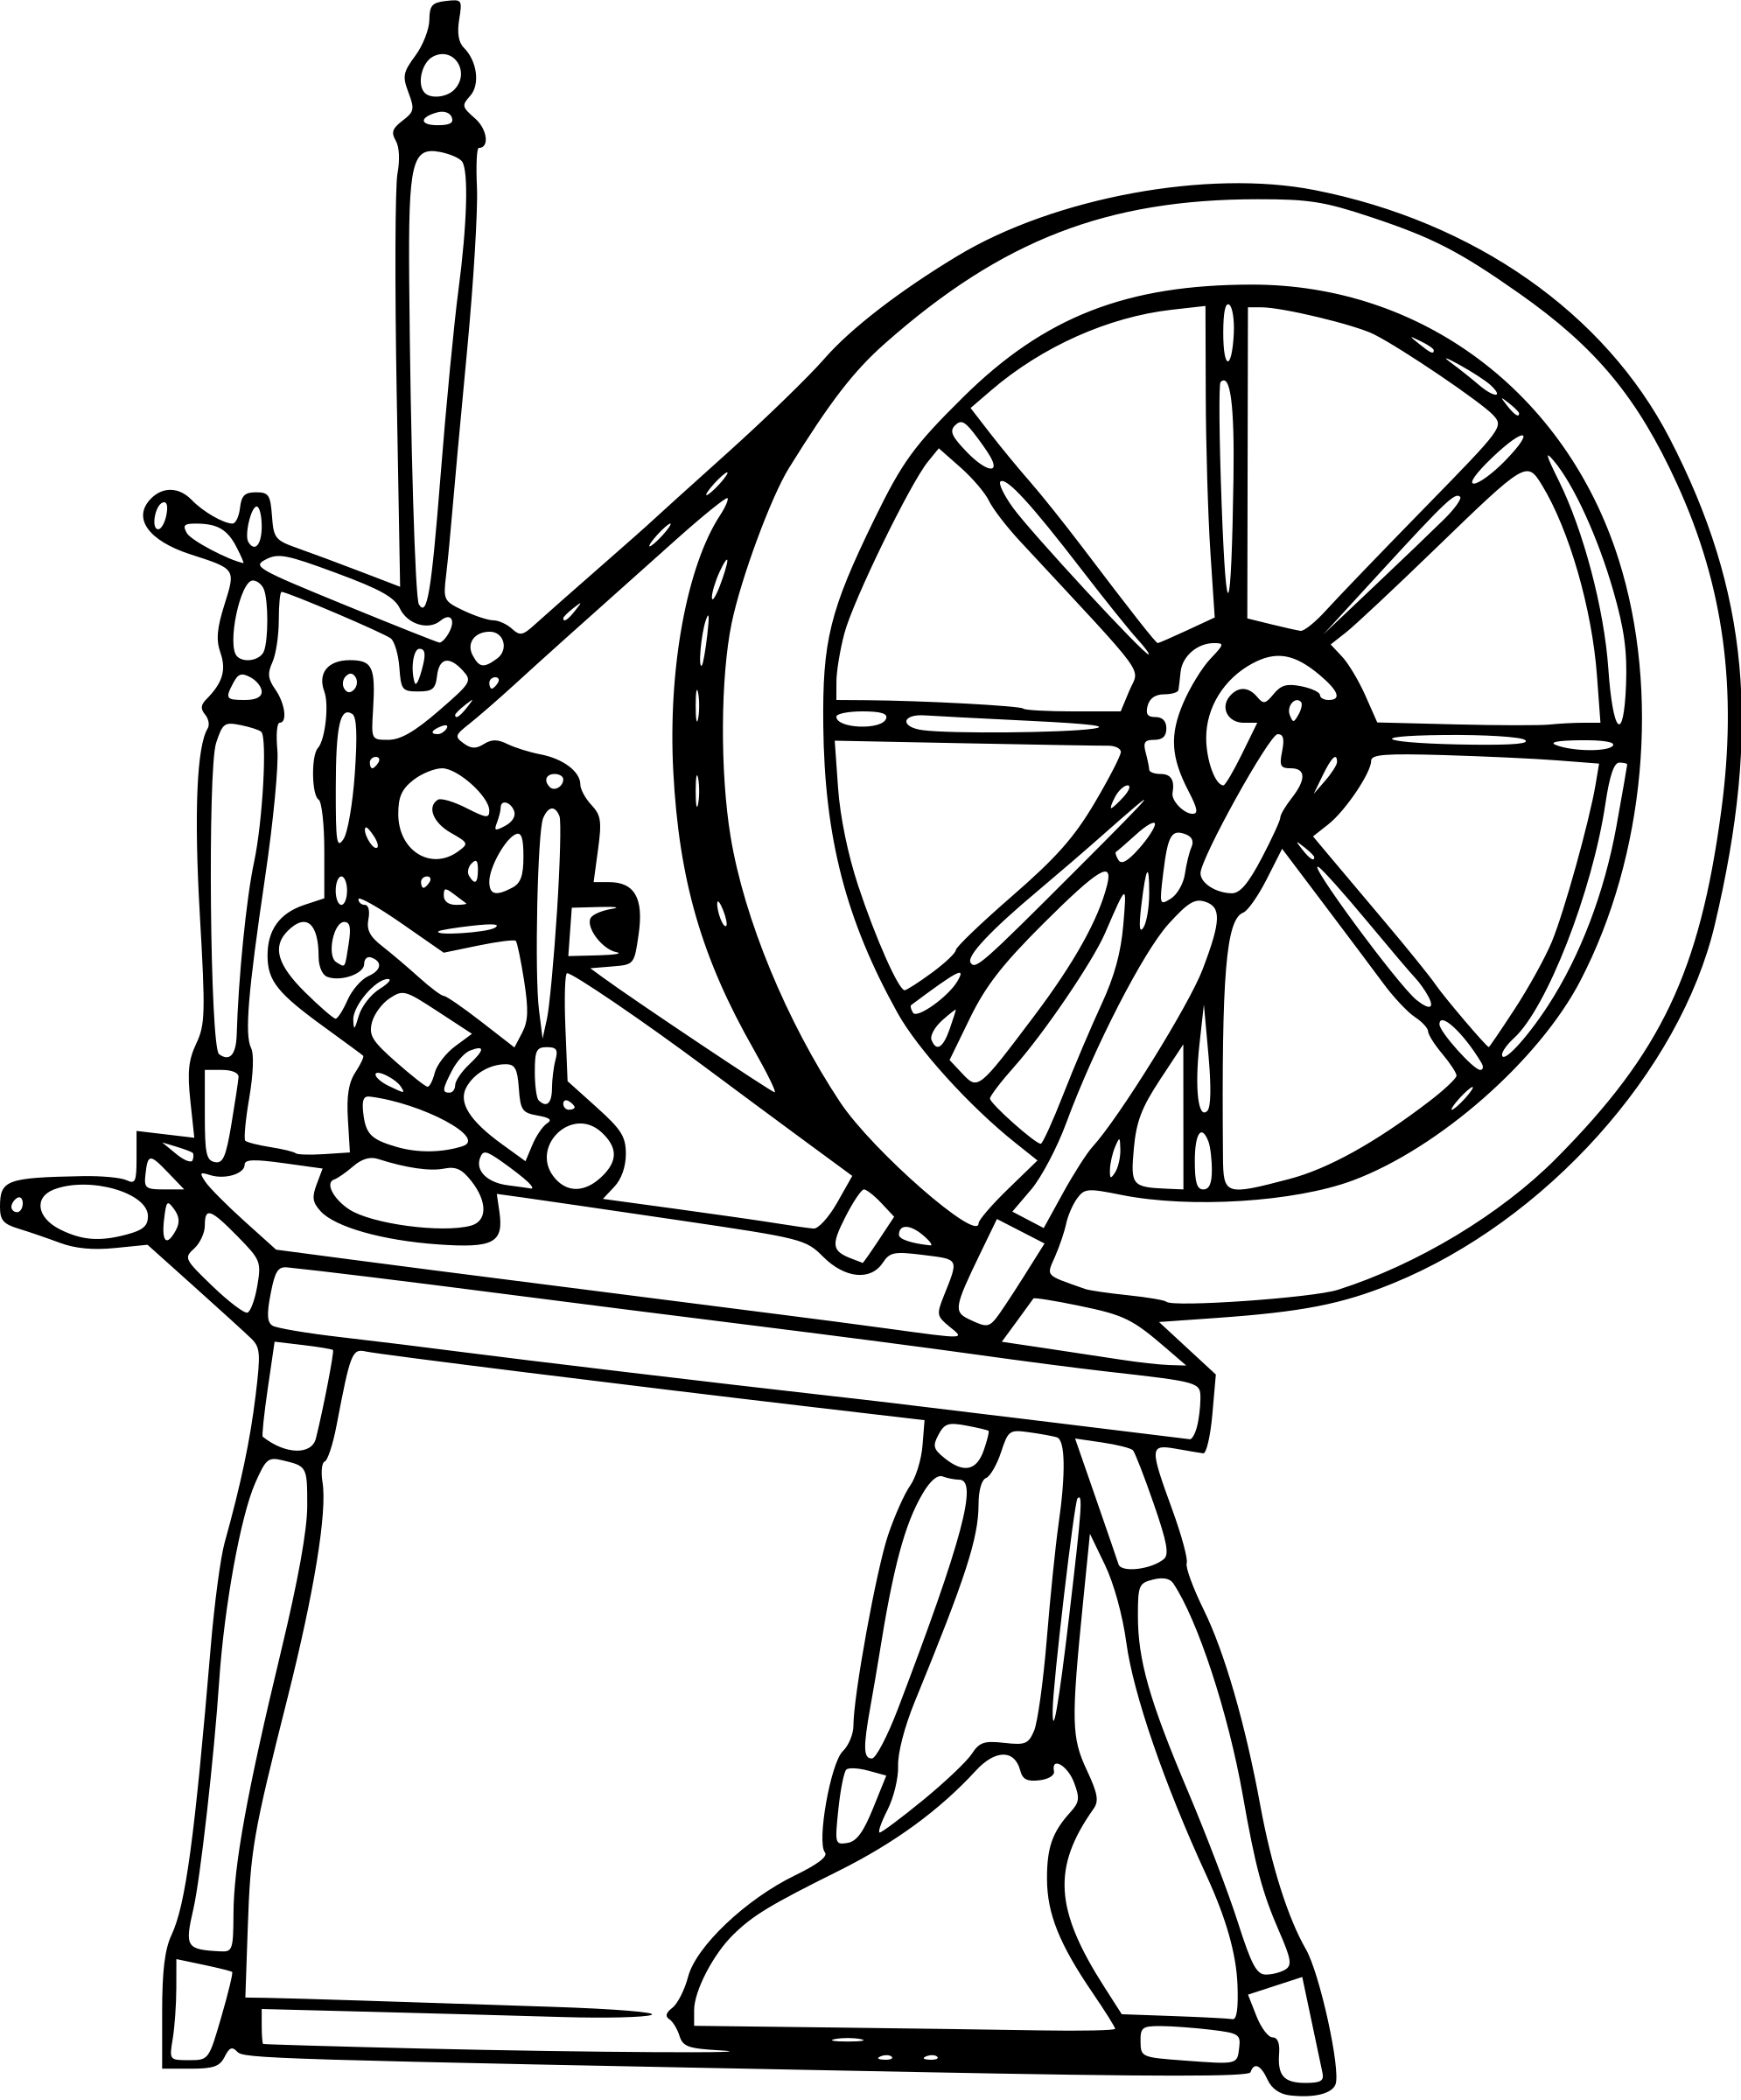 Spinning Wheel Clipart 20 Free Cliparts